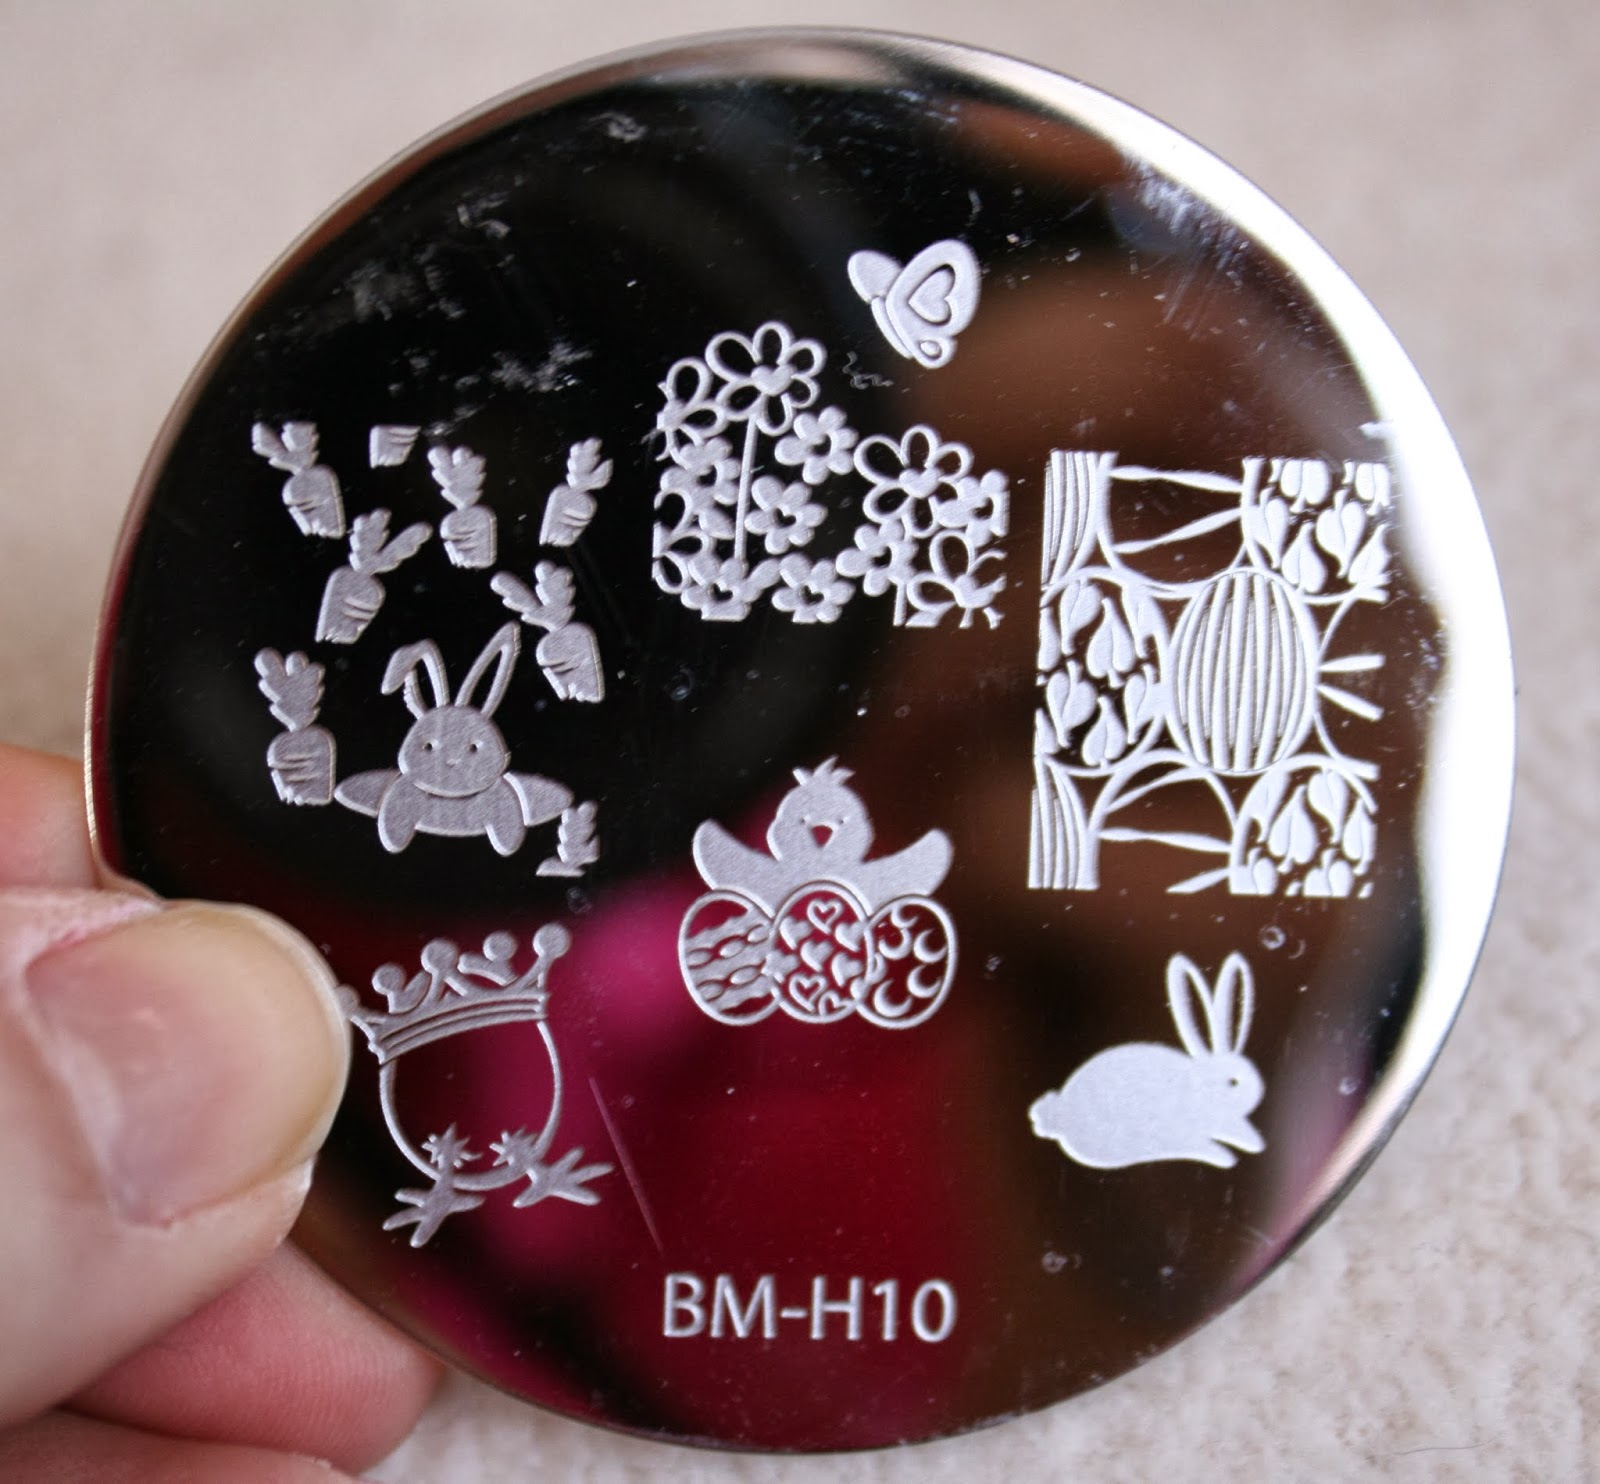 bundle monster nail stamping plates set collection holiday 2013 nails art stamp konad bm-h10